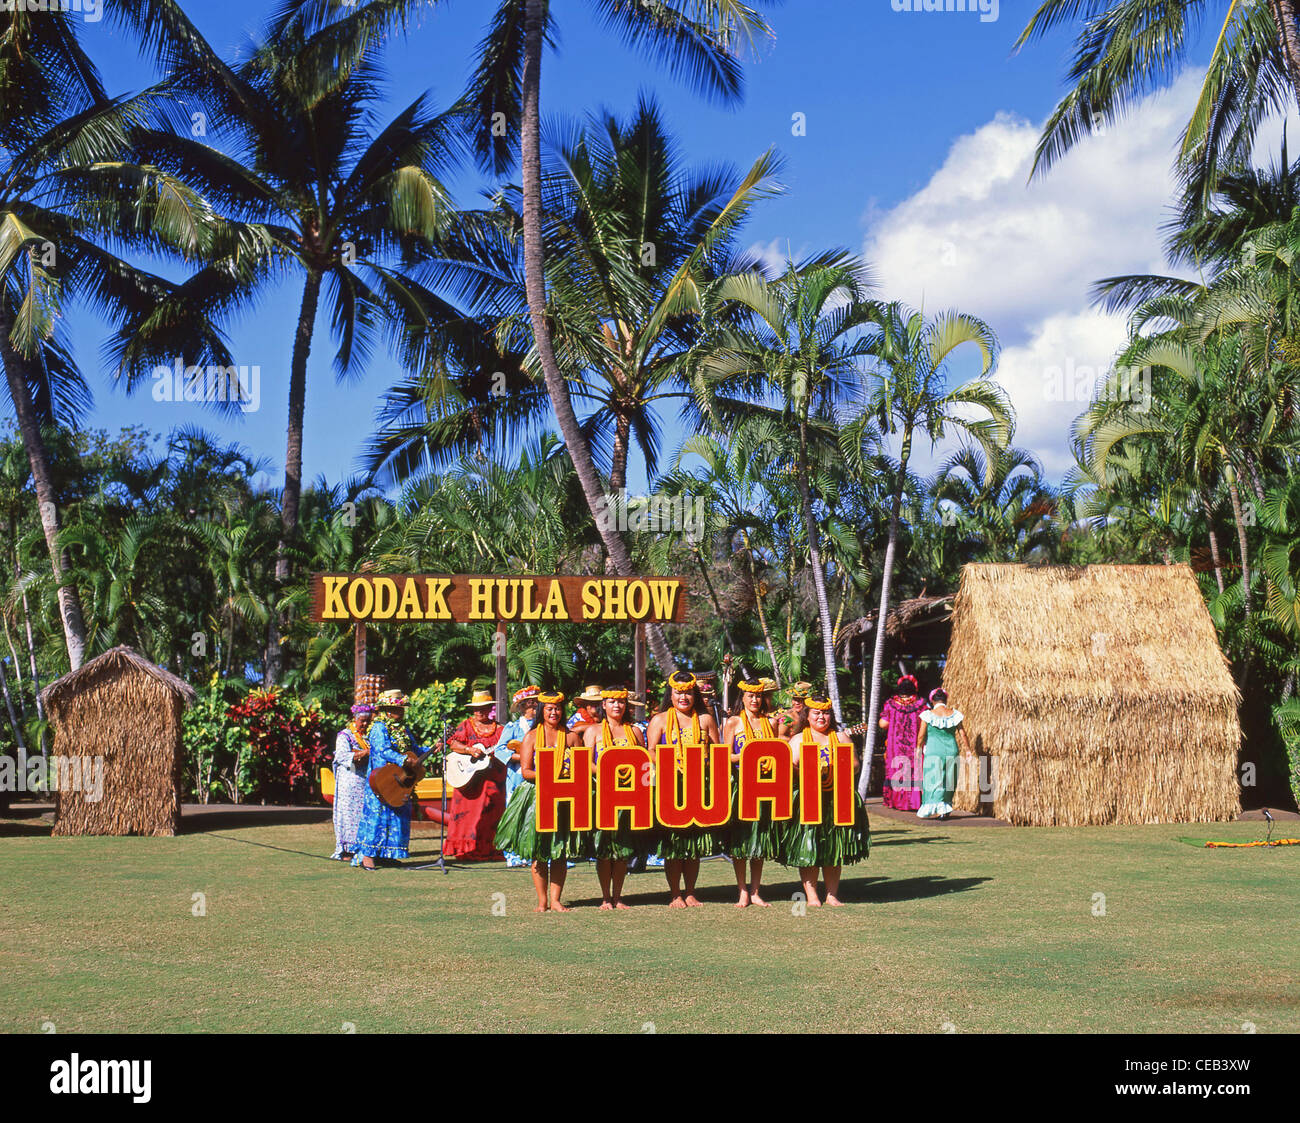 Oahu Hawaii United States  city images : ... , Kodak Hula Show, Honolulu, Oahu, Hawaii, United States of America